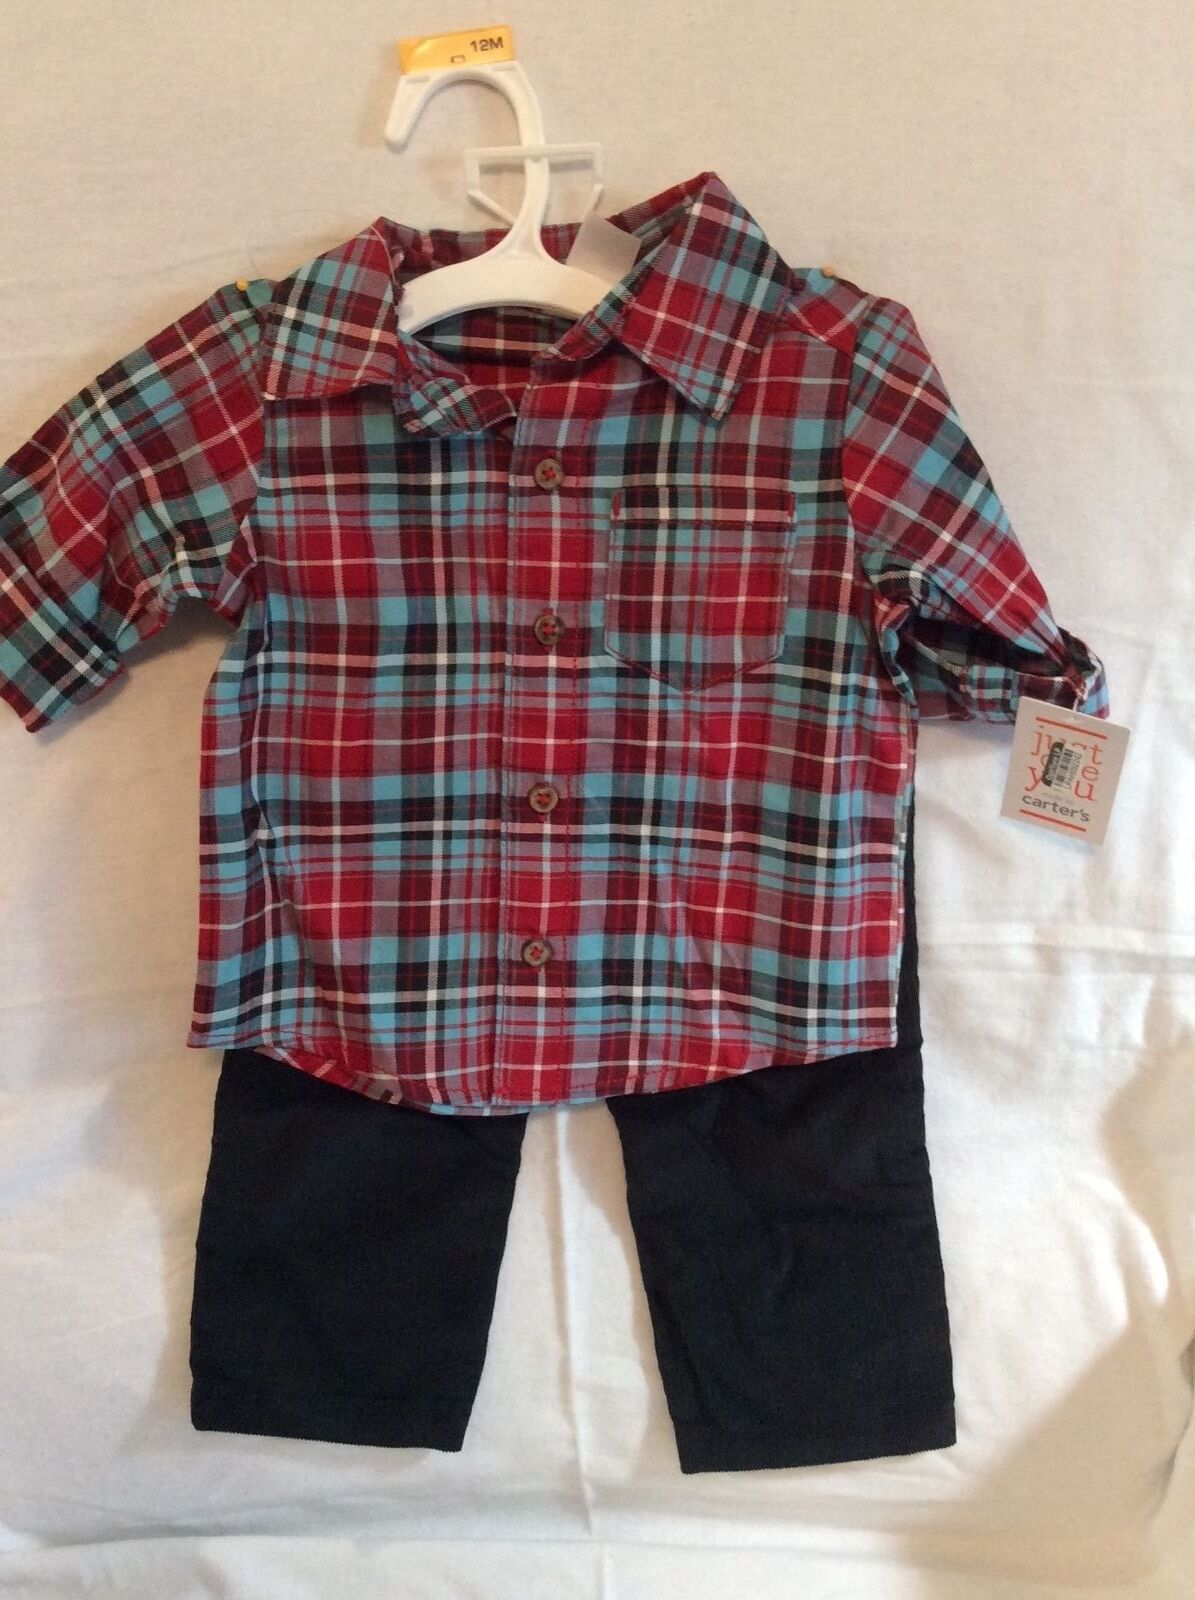 Carter's Just For You Shirt & Pants Outfit Set Baby Boys 12